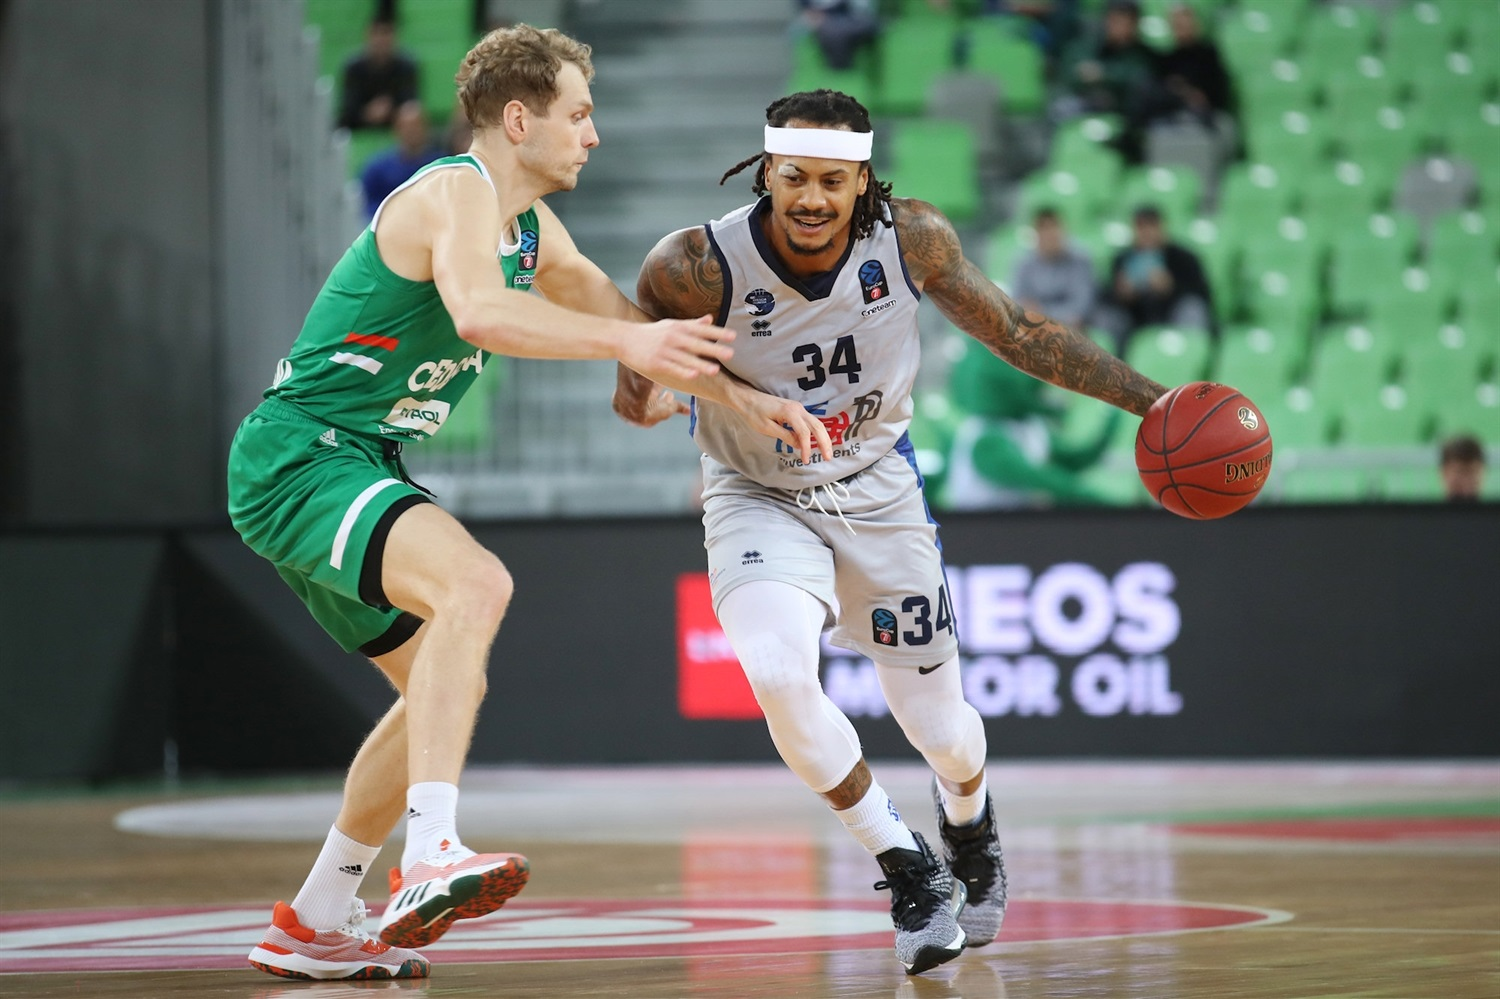 David Moss - Germani Brescia Leonessa (photo Olimpija - Ales Fevzer) - EC19